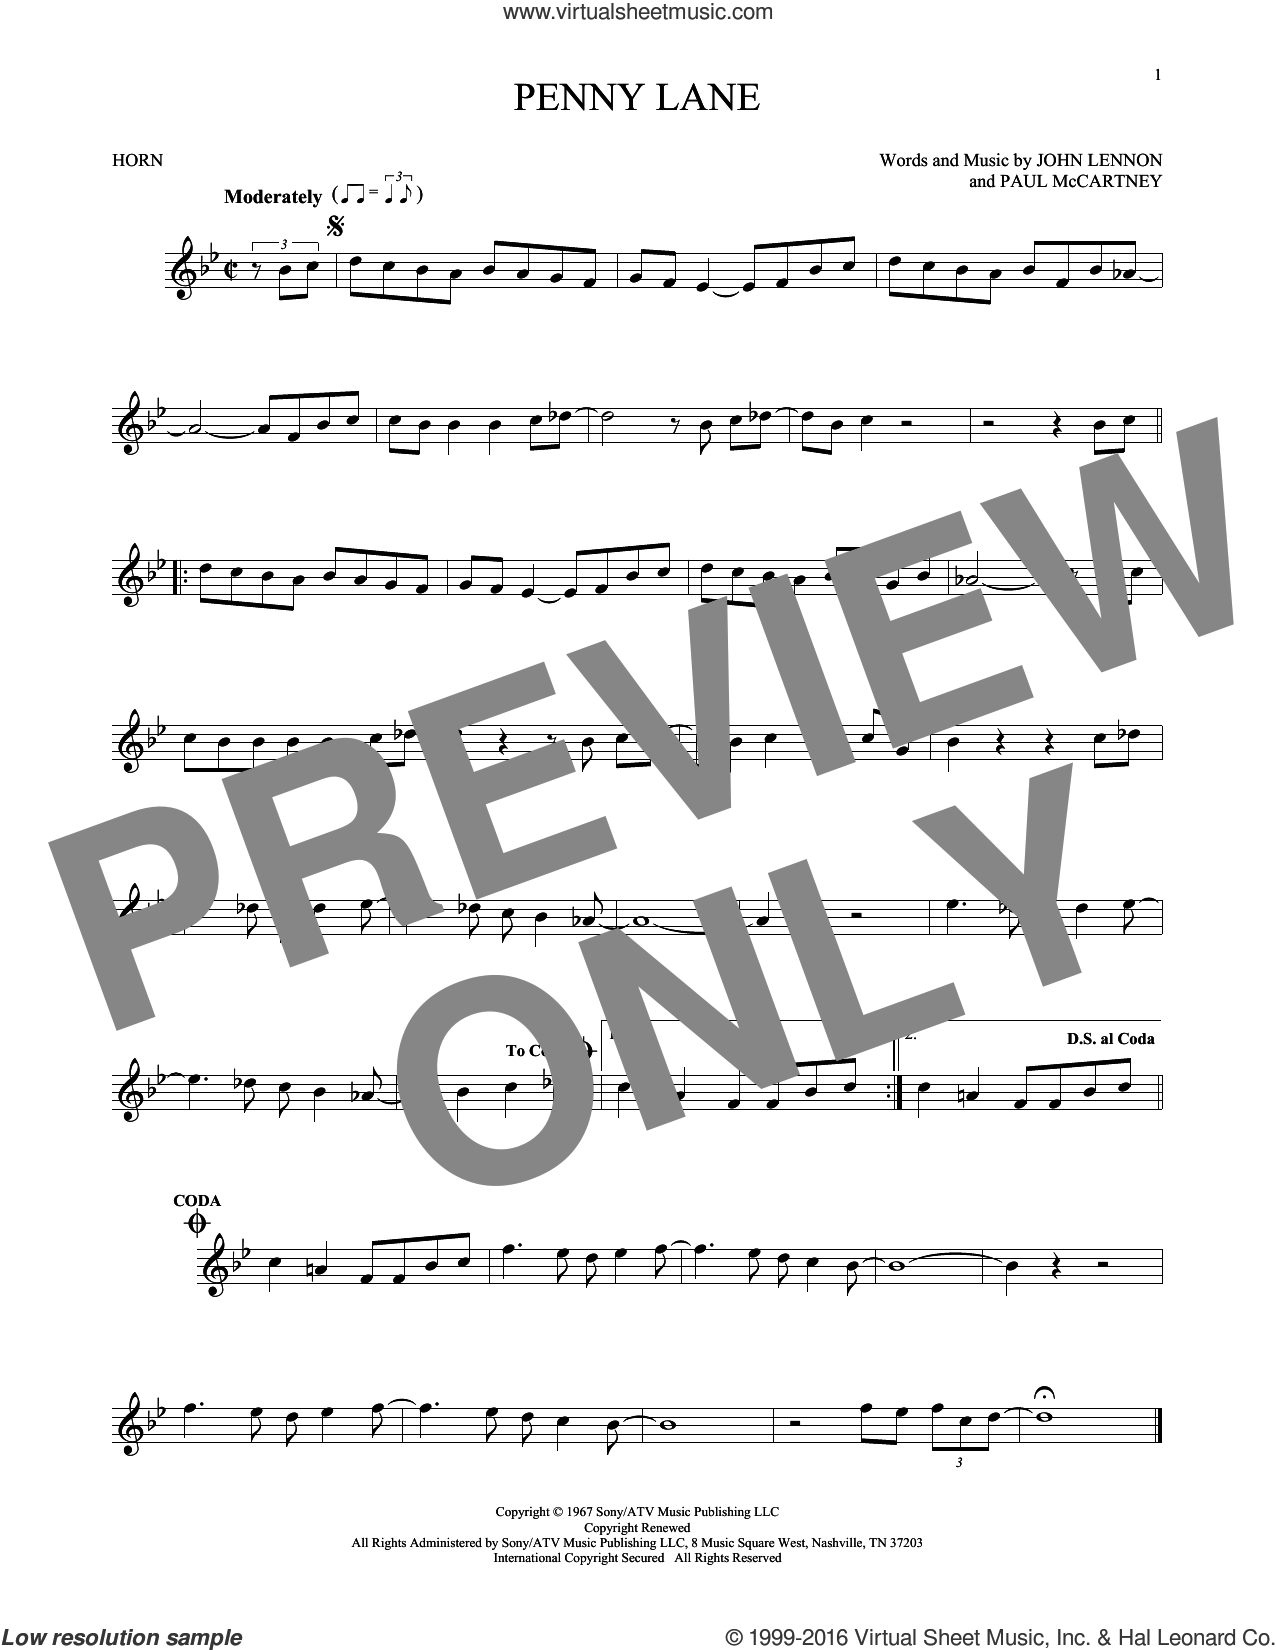 Penny Lane sheet music for horn solo by The Beatles, John Lennon and Paul McCartney, intermediate skill level